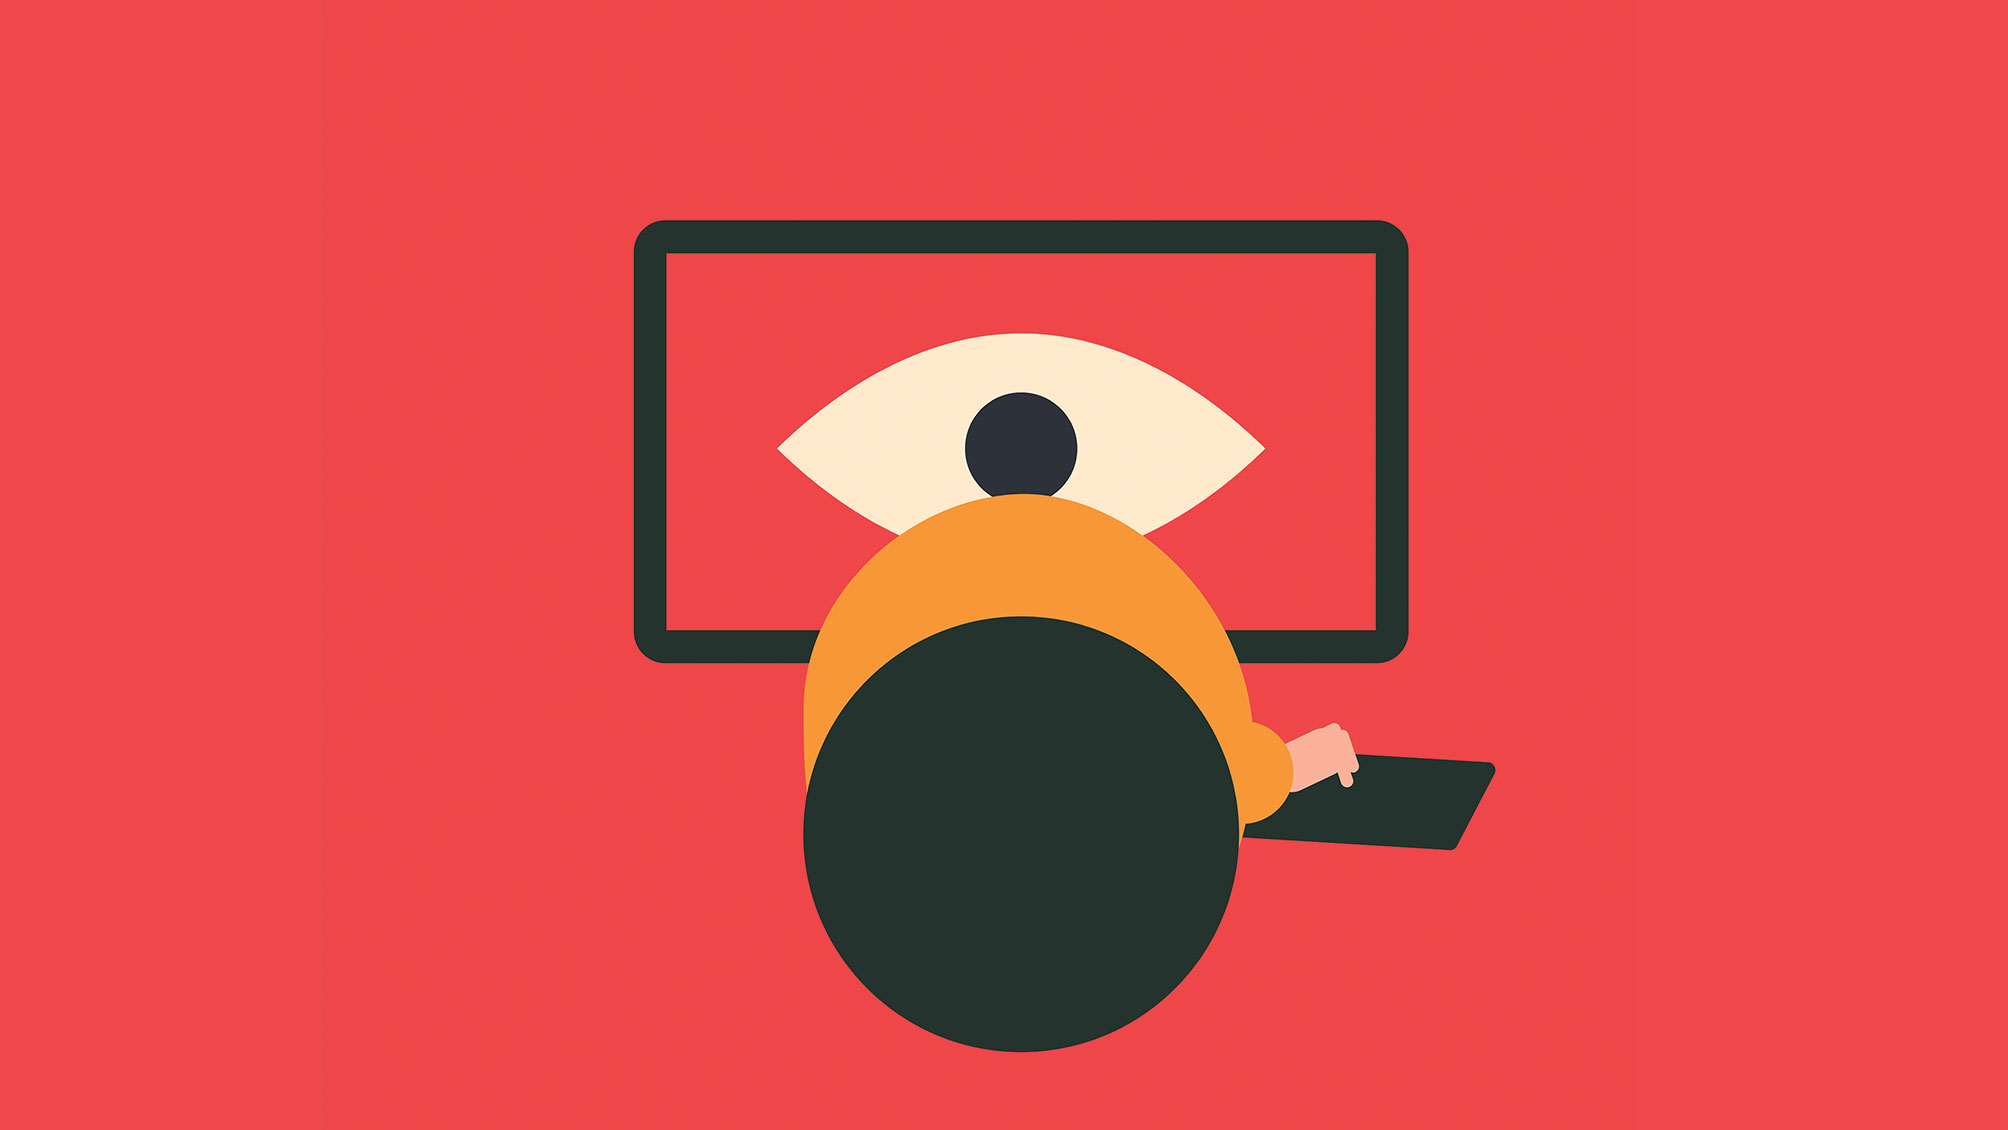 China's use of big data might actually make it less Big Brother-ish - MIT Technology Review